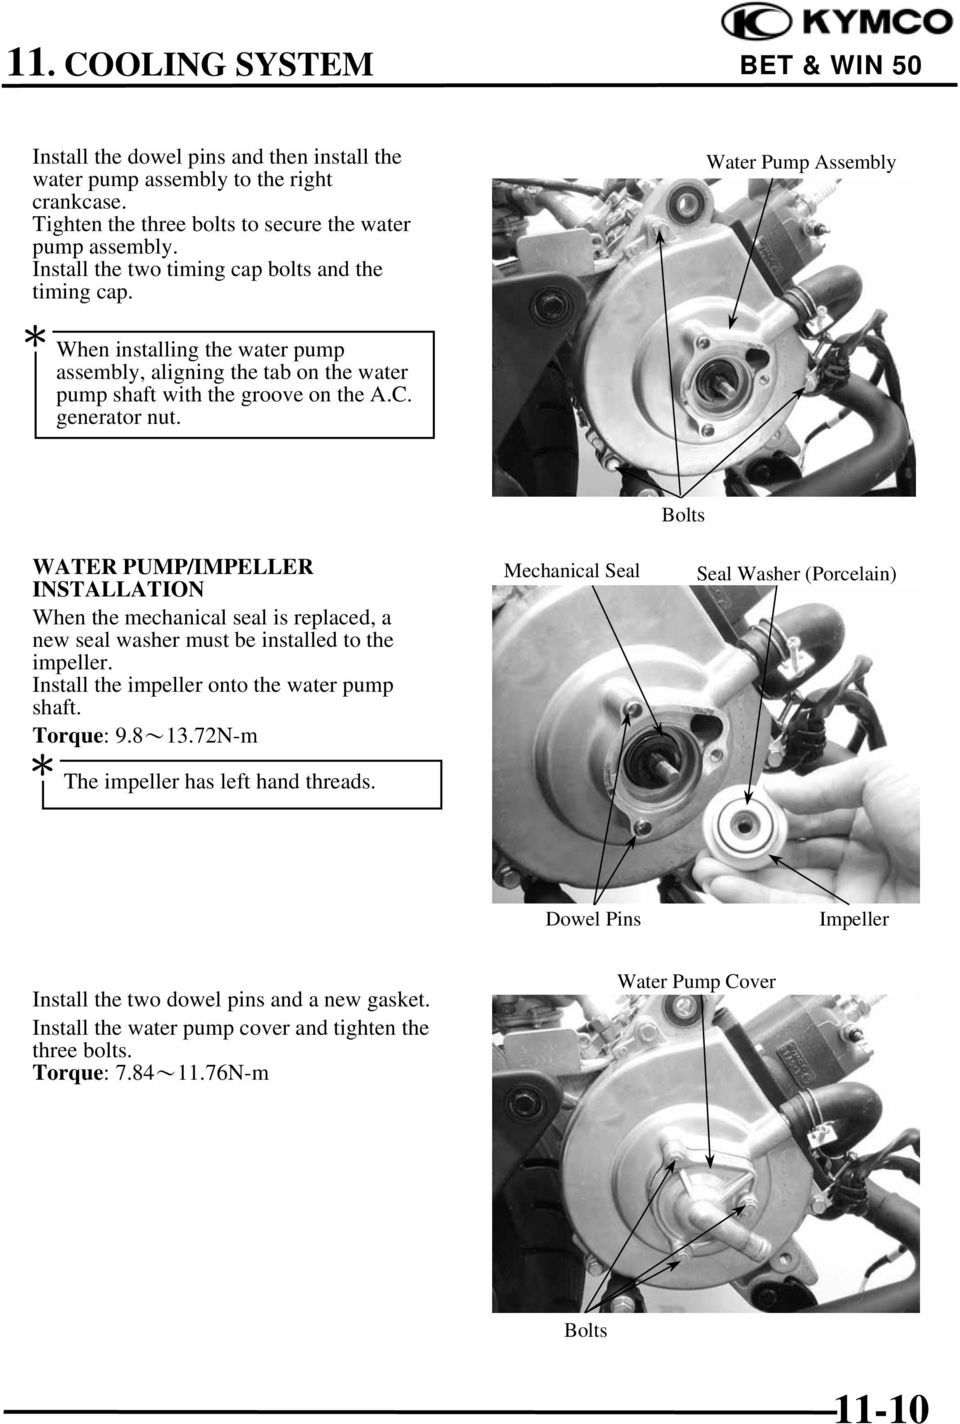 Water Pump Assembly WATER PUMP/IMPELLER INSTALLATION When the mechanical seal is replaced, a new seal washer must be installed to the impeller. Install the impeller onto the water pump shaft.